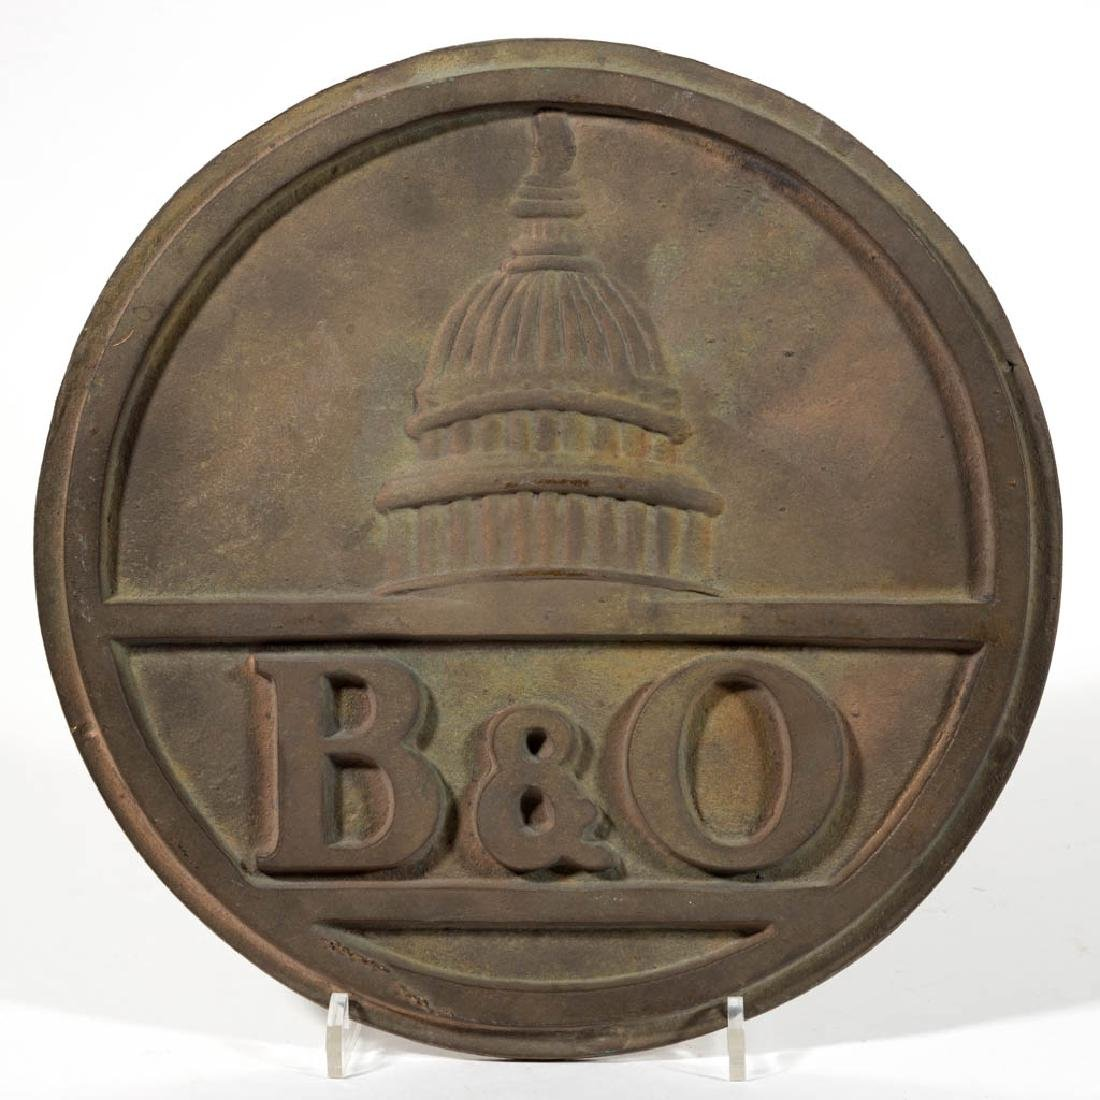 BALTIMORE AND OHIO RAILROAD BRONZE SIGN OR EMBLEM